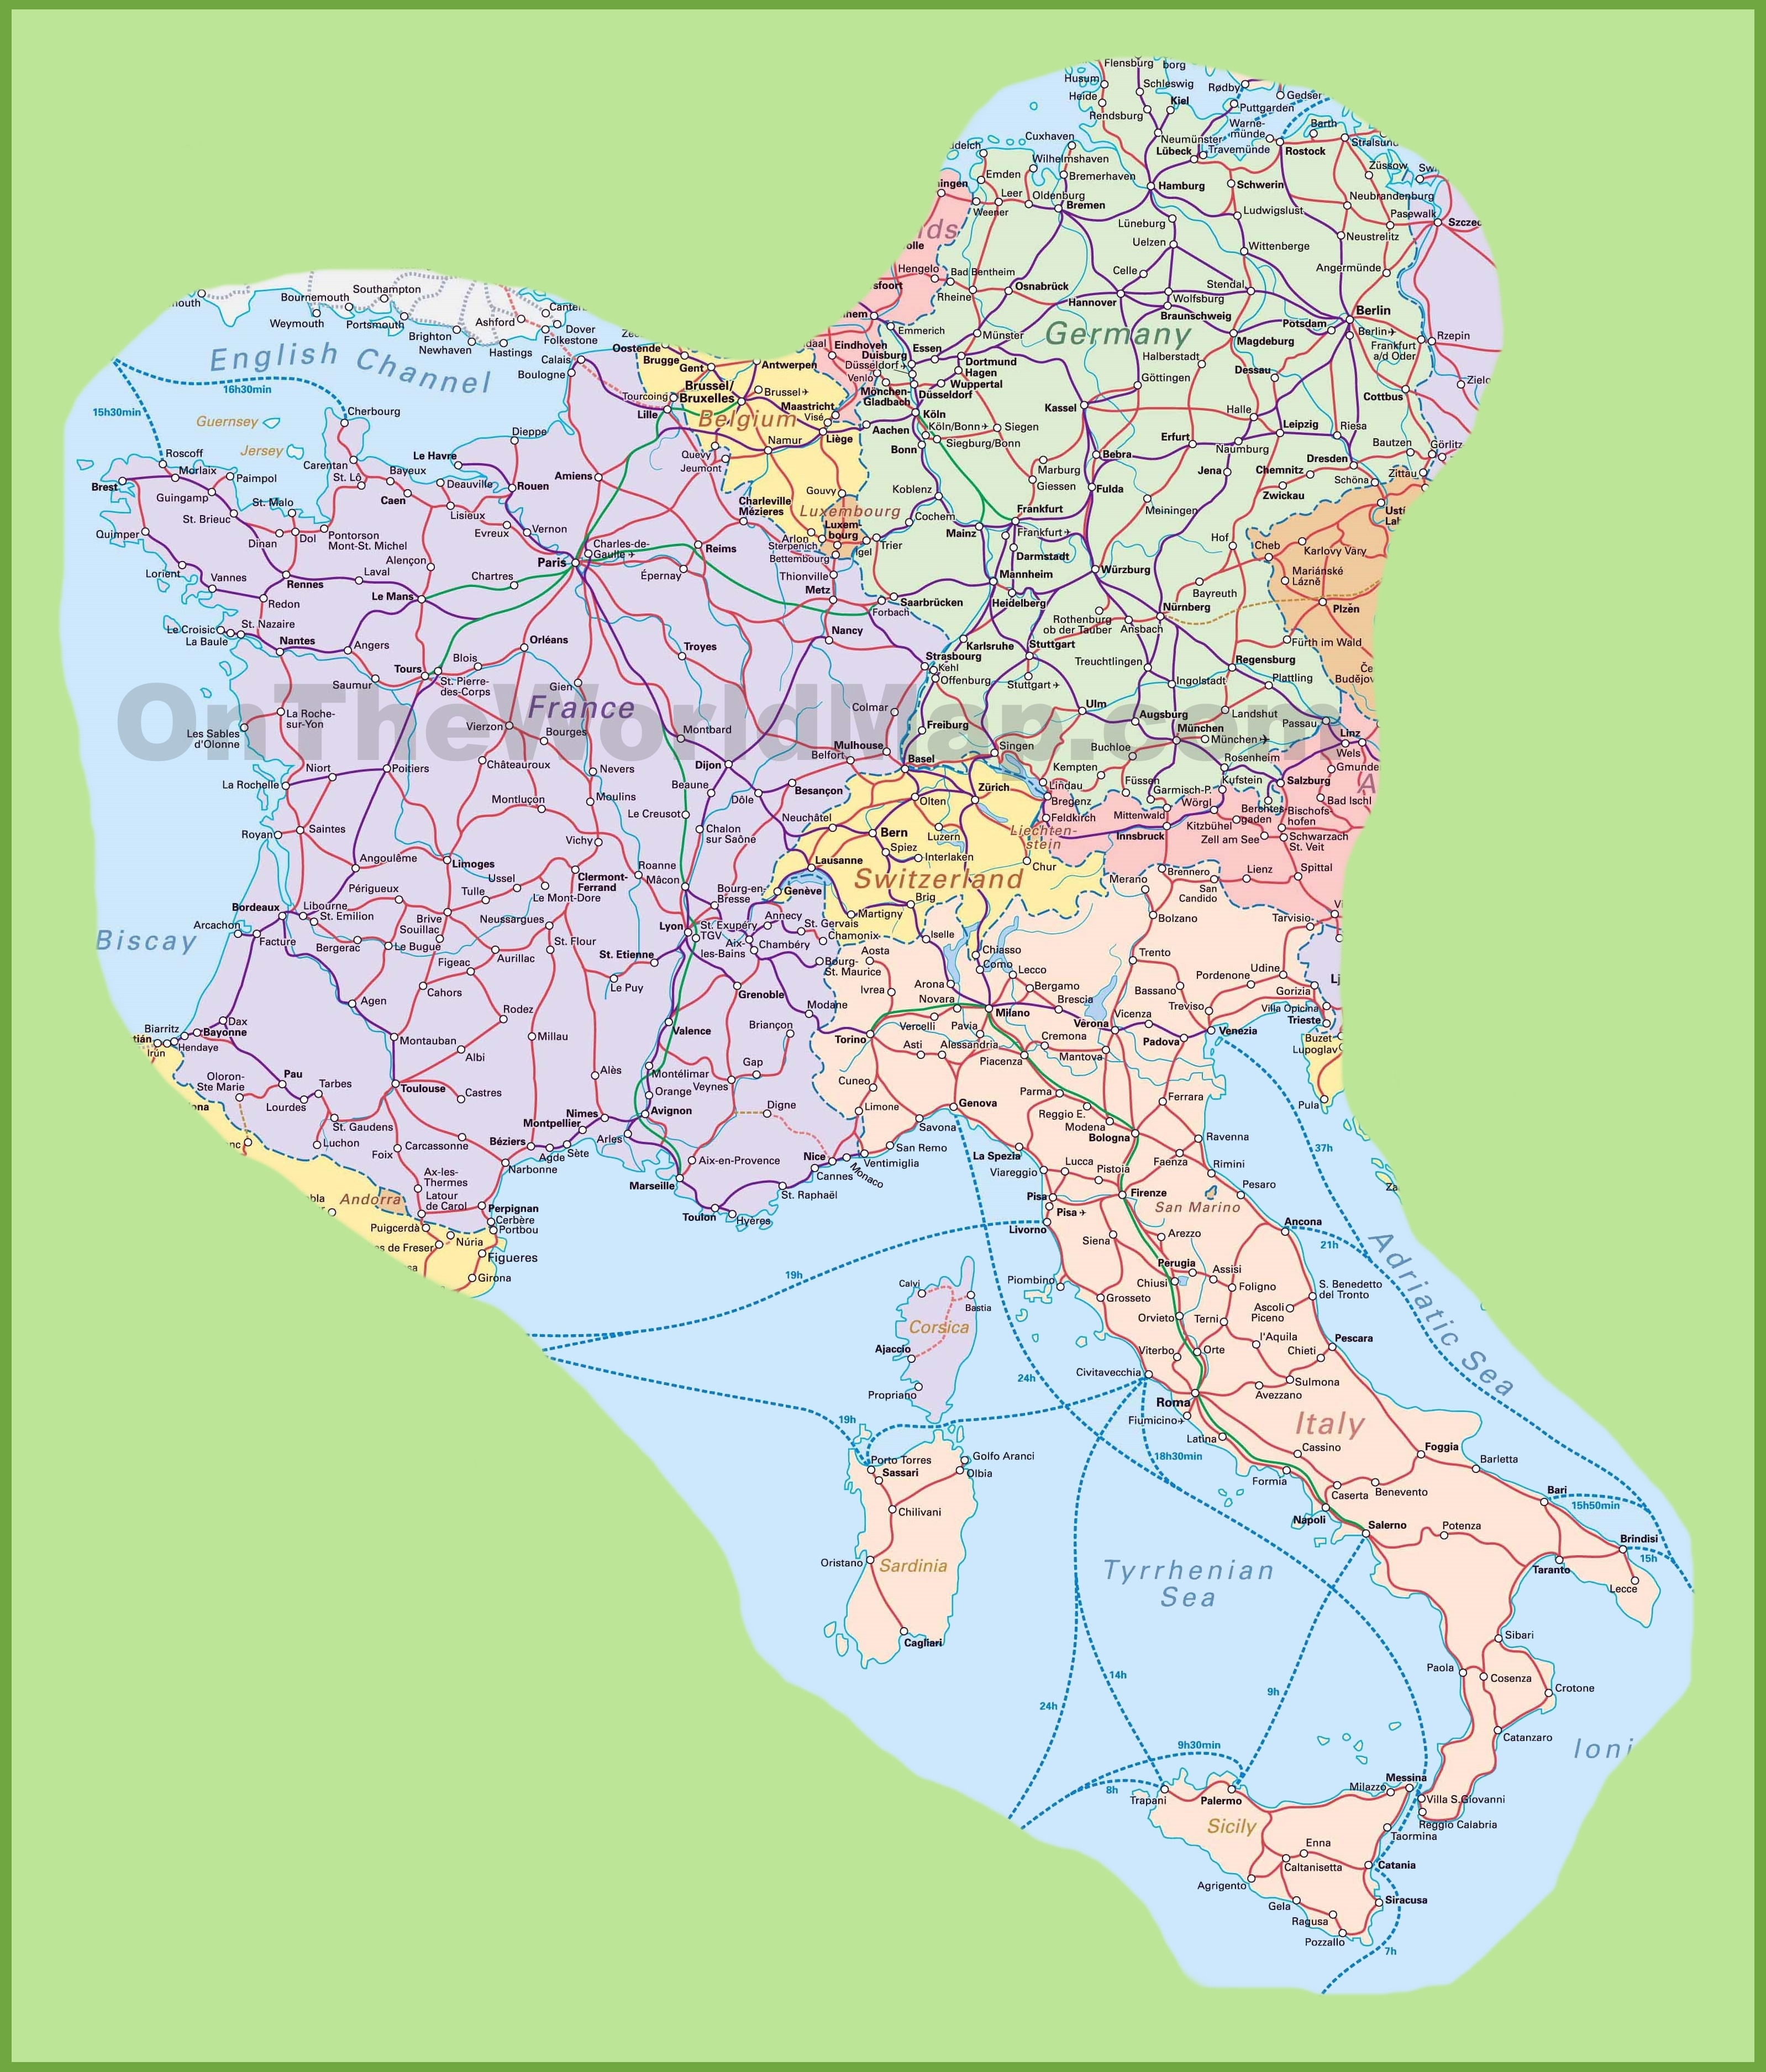 Map Of Switzerland, Italy, Germany And France intended for World Map Italy And Germany